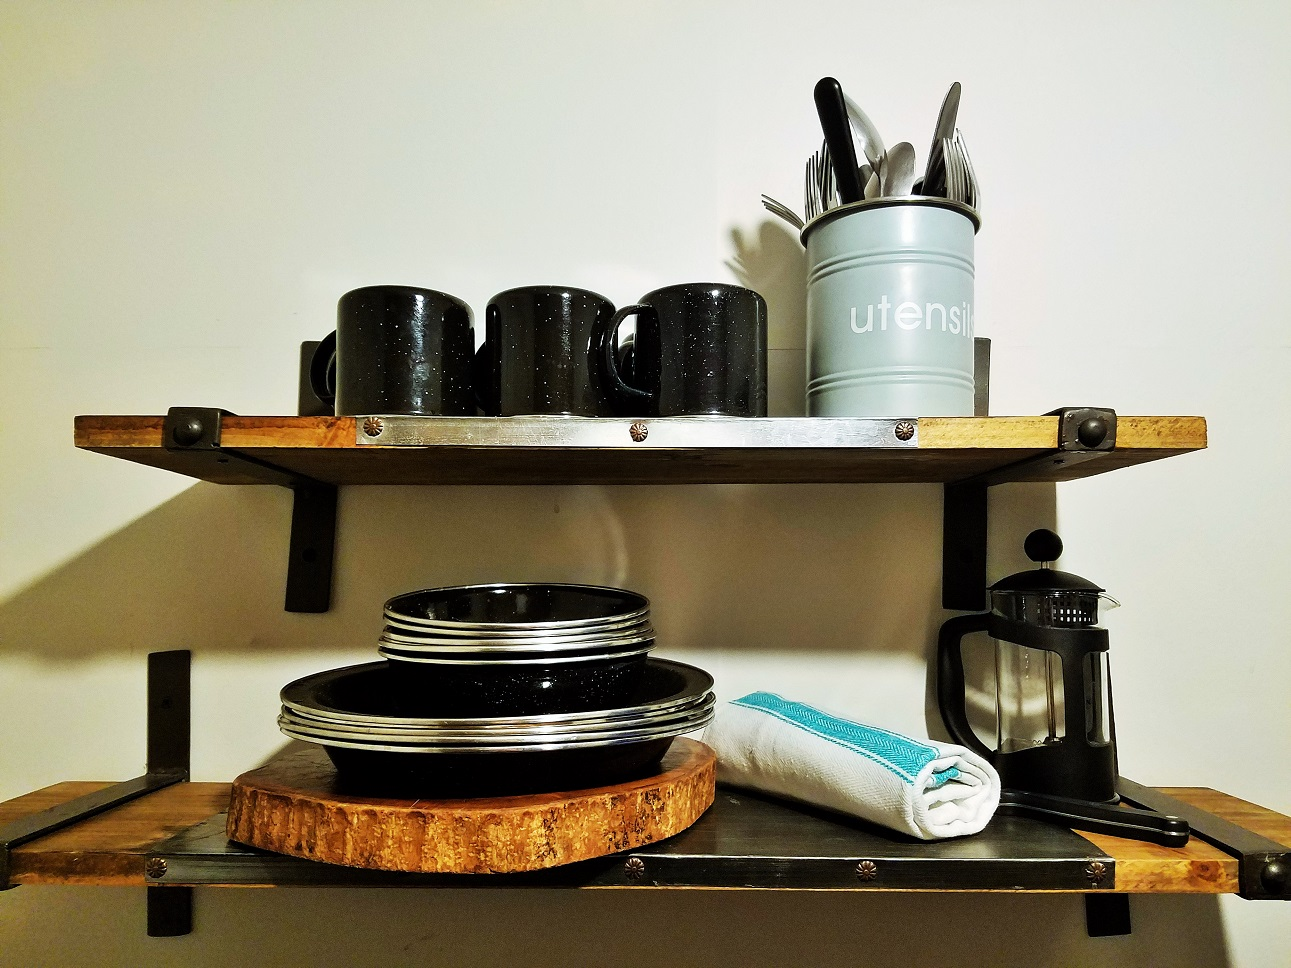 North Star Club utensils in the utility room